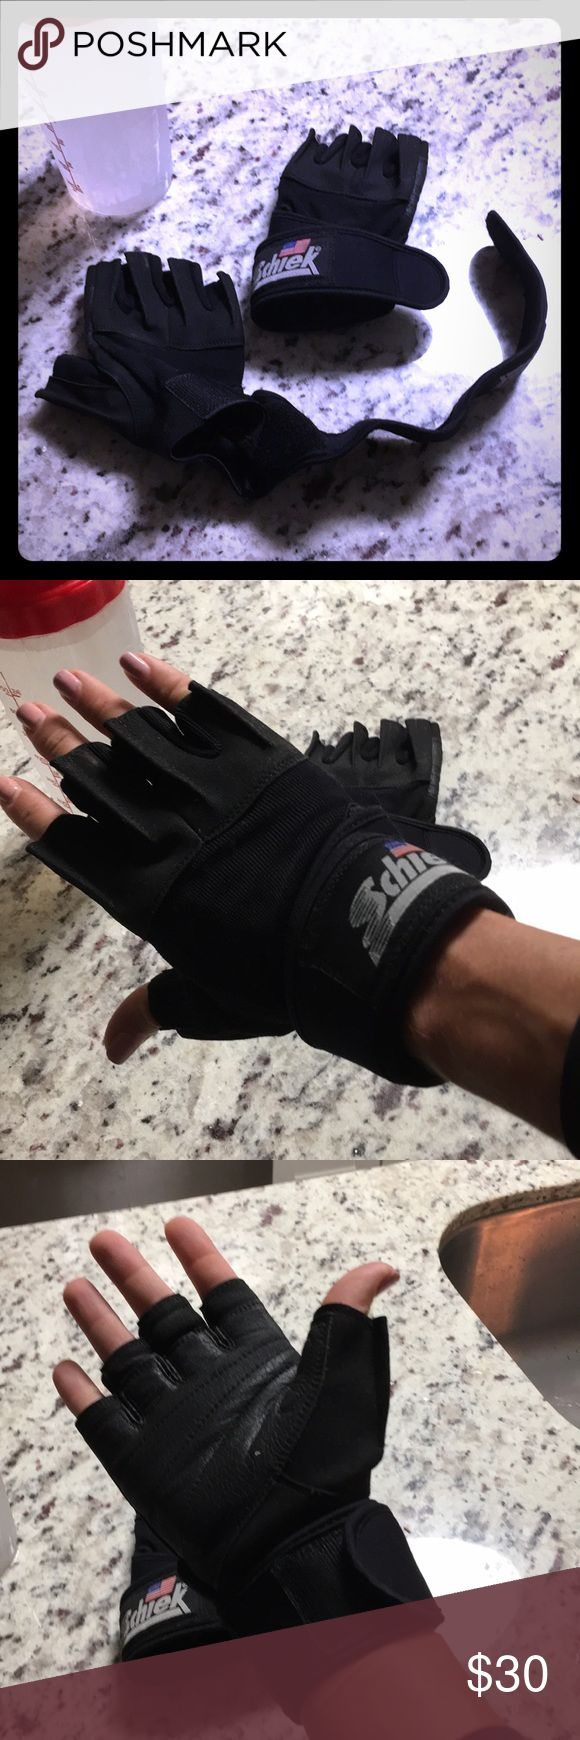 Schiek 🇺🇸 Weight Lifting Gloves Wrist Wrap • S Schiek weight lifting gloves with Velcro wrist straps. Purchased and never used. Schiek Accessories Gloves & Mittens